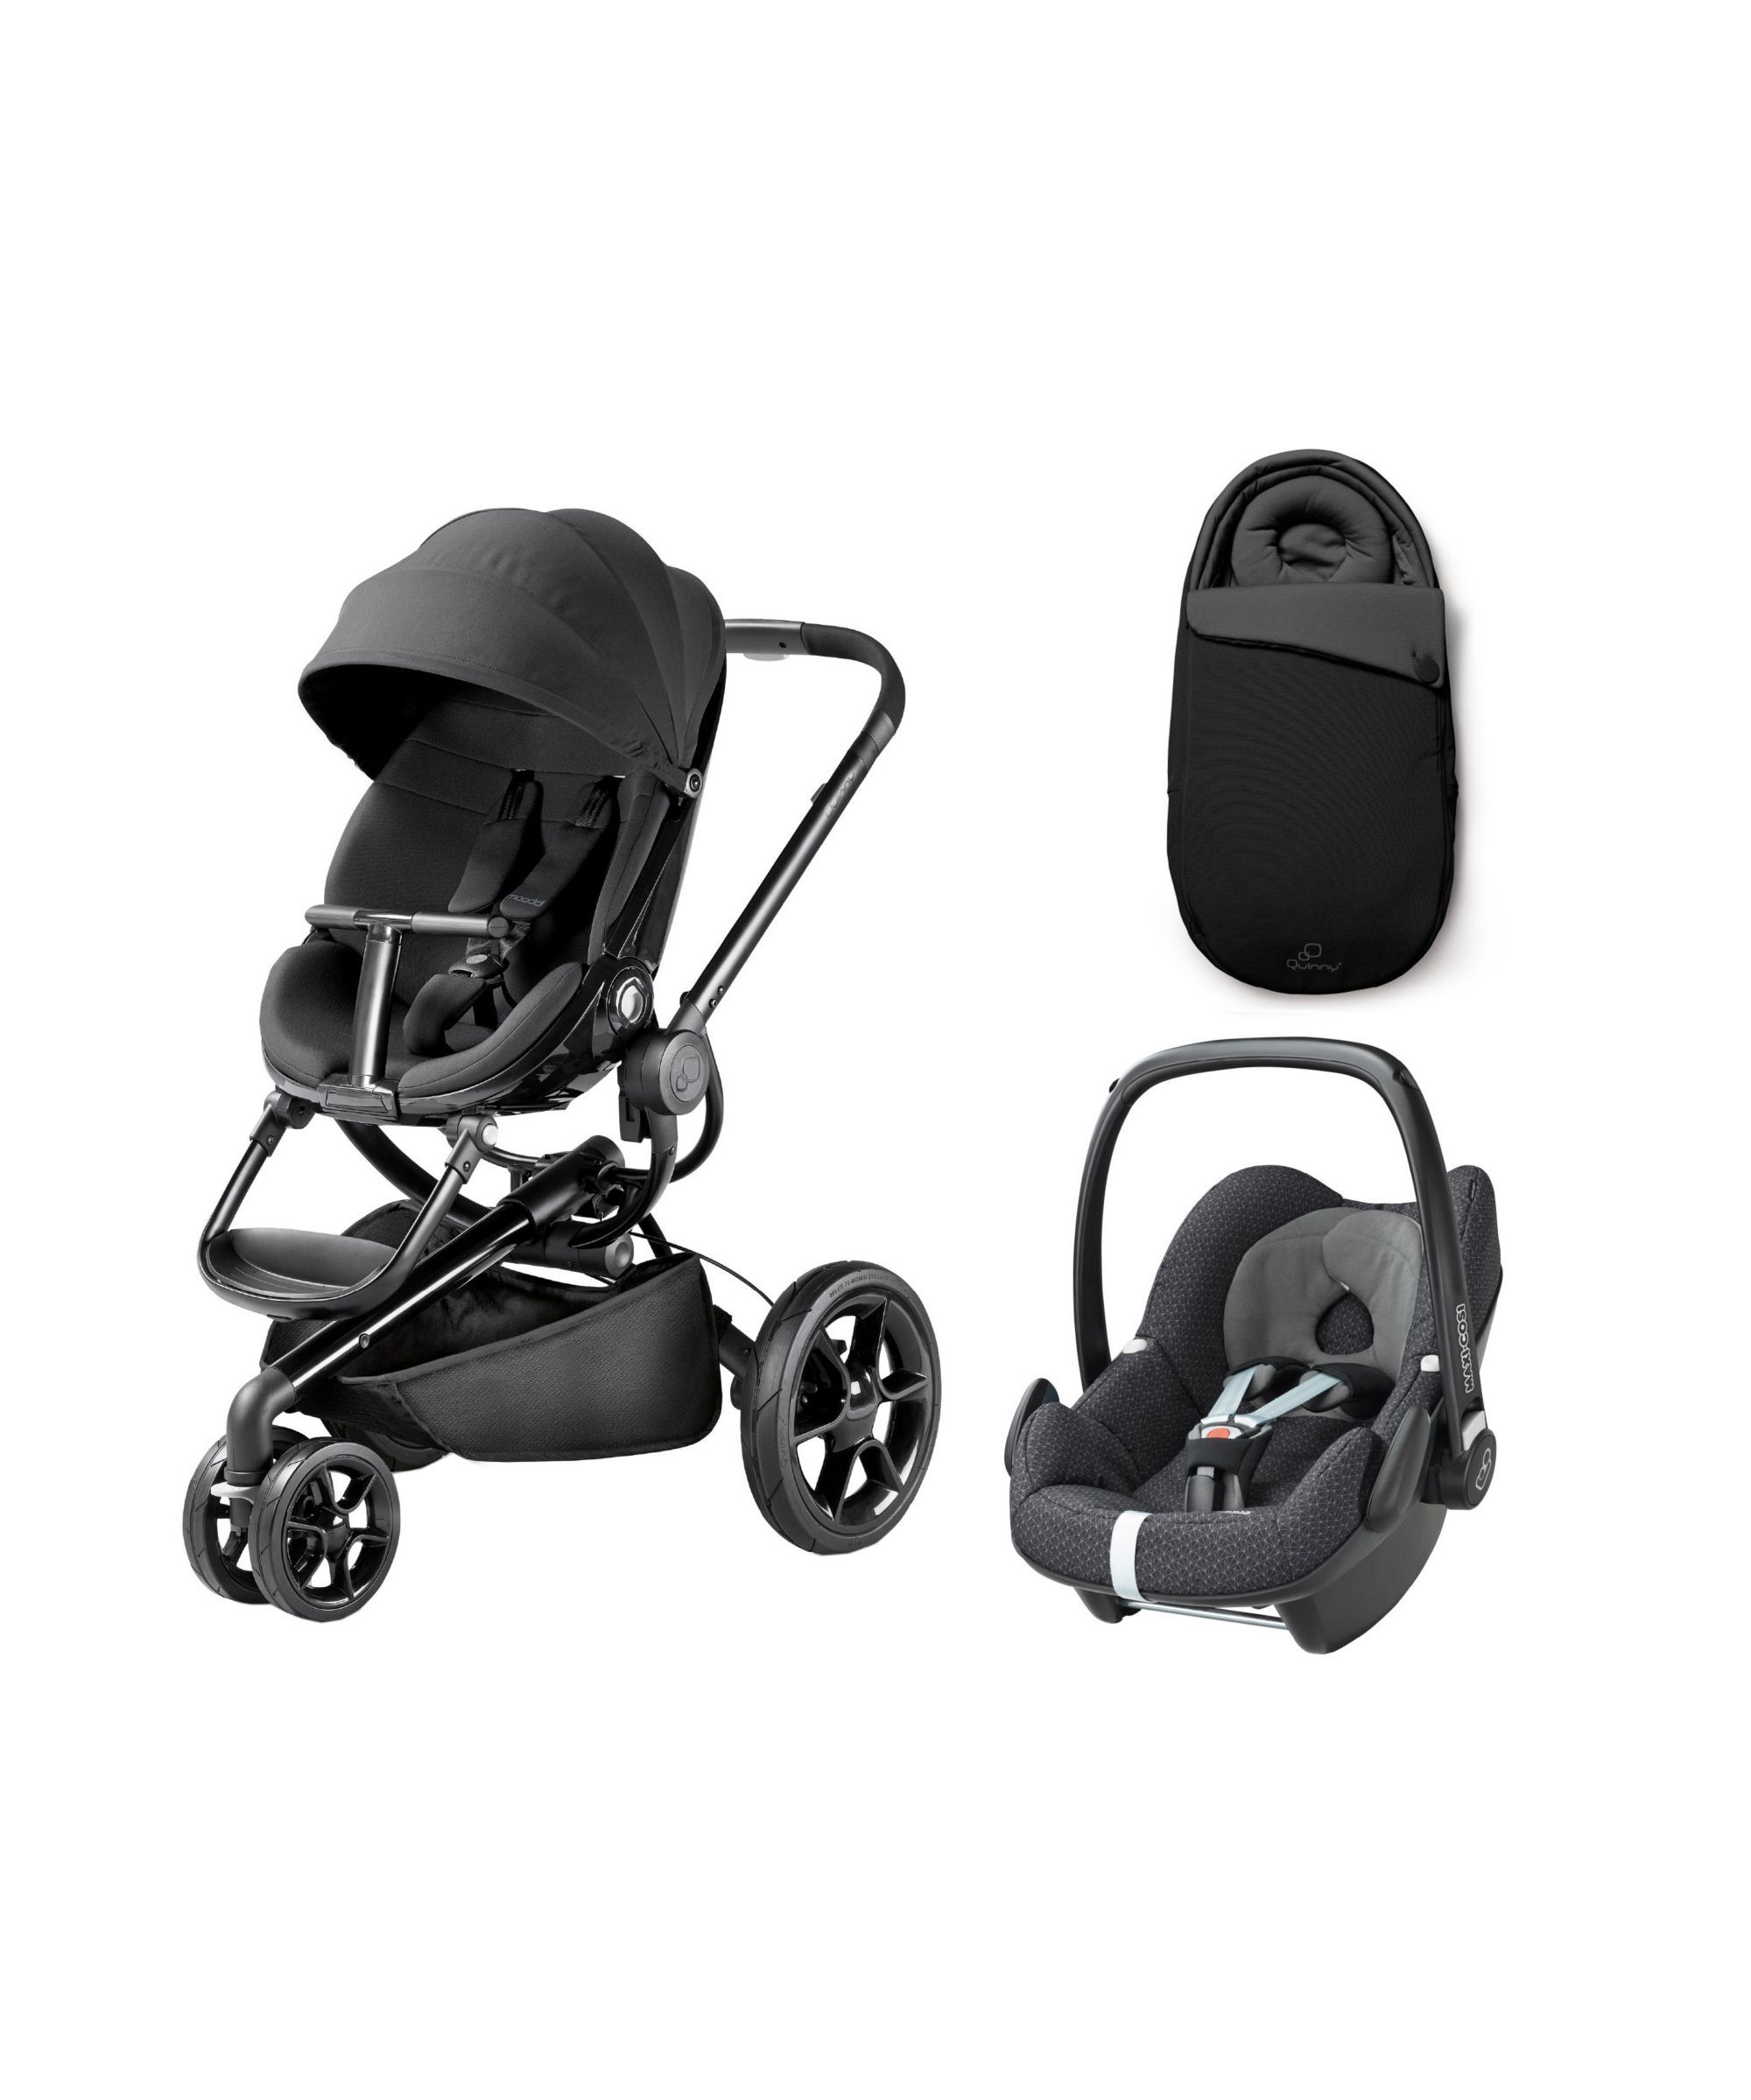 Quinny Mood Pushchair with Pebble Car Seat Black